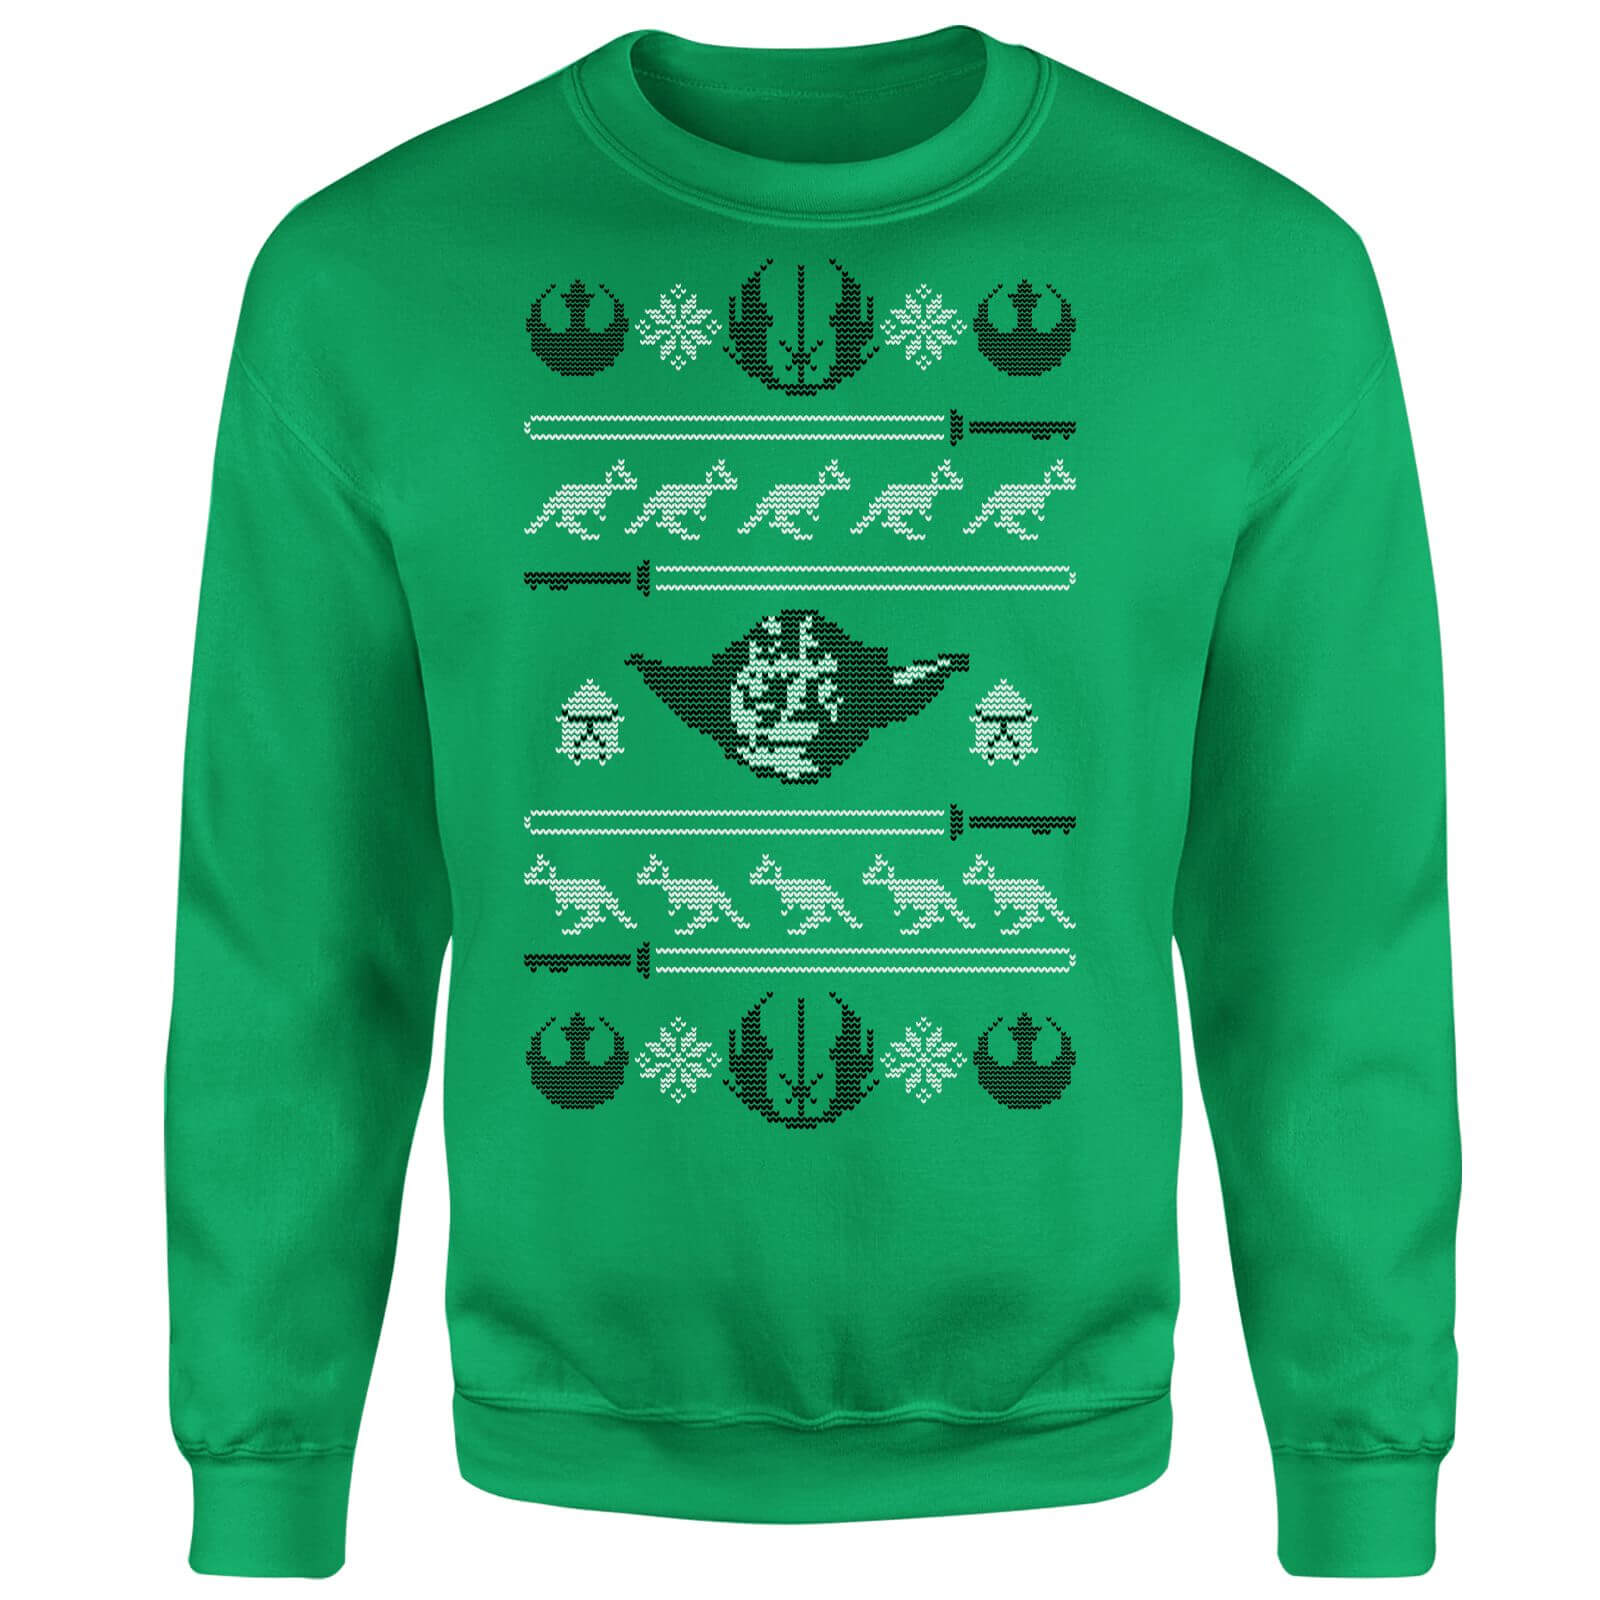 Star Wars Yoda Face Knit Green Christmas Sweatshirt